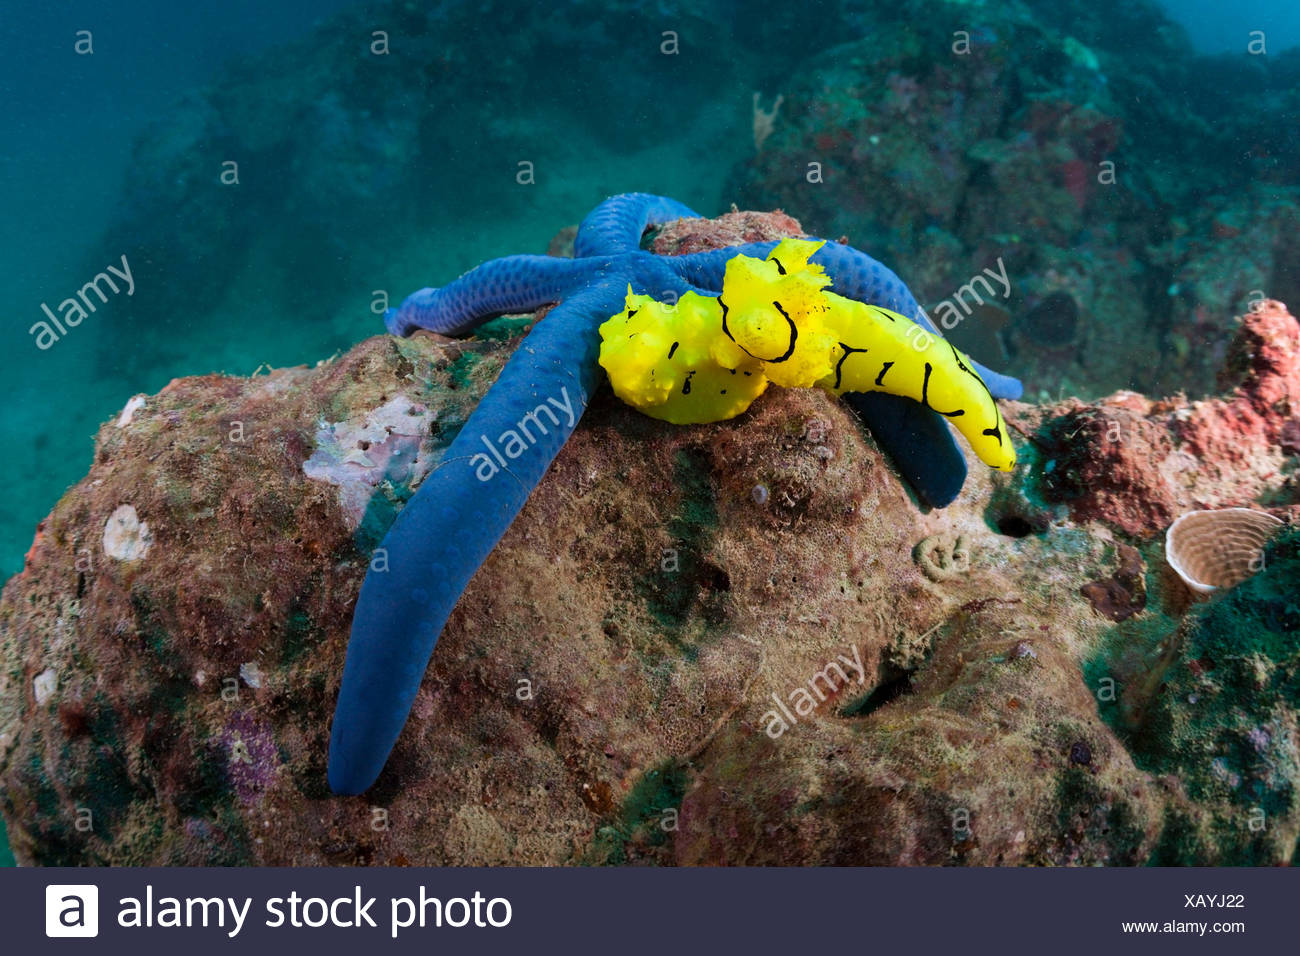 Yellow variable neon slug on starfish, Notodoris minor, Florida Islands, the Solomon Islands - Stock Image